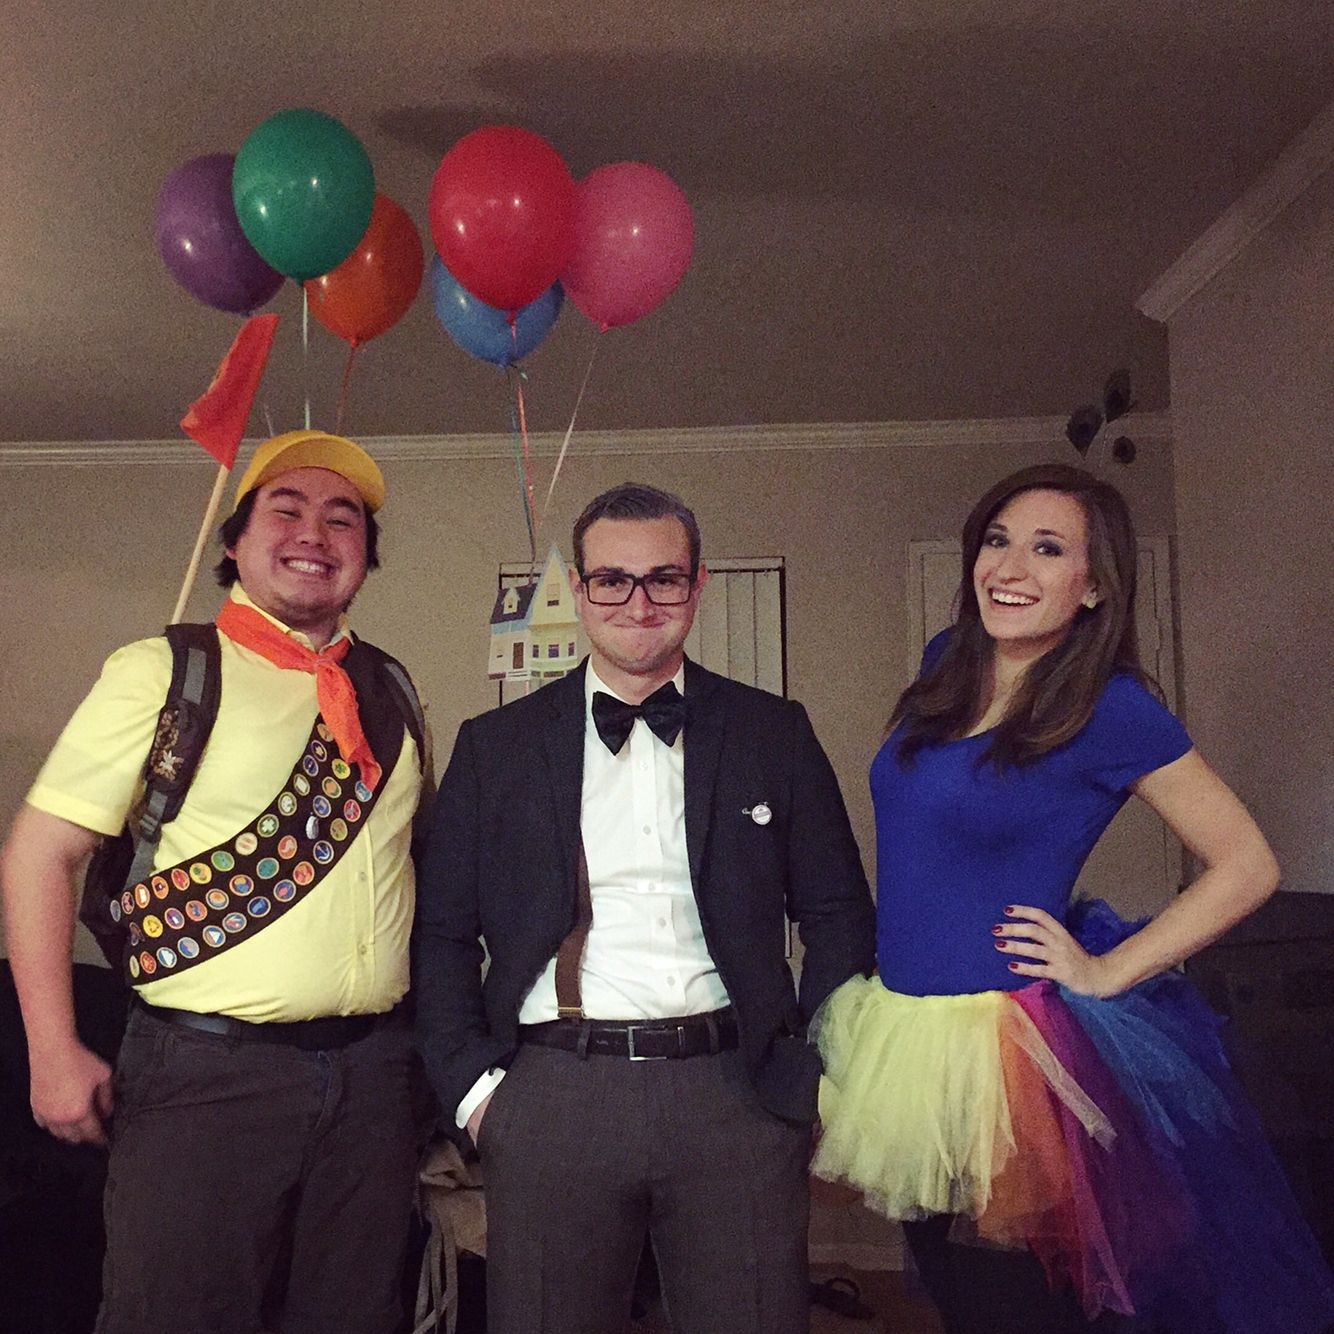 up halloween costumes - russell, carl and kevin. disney pixar group